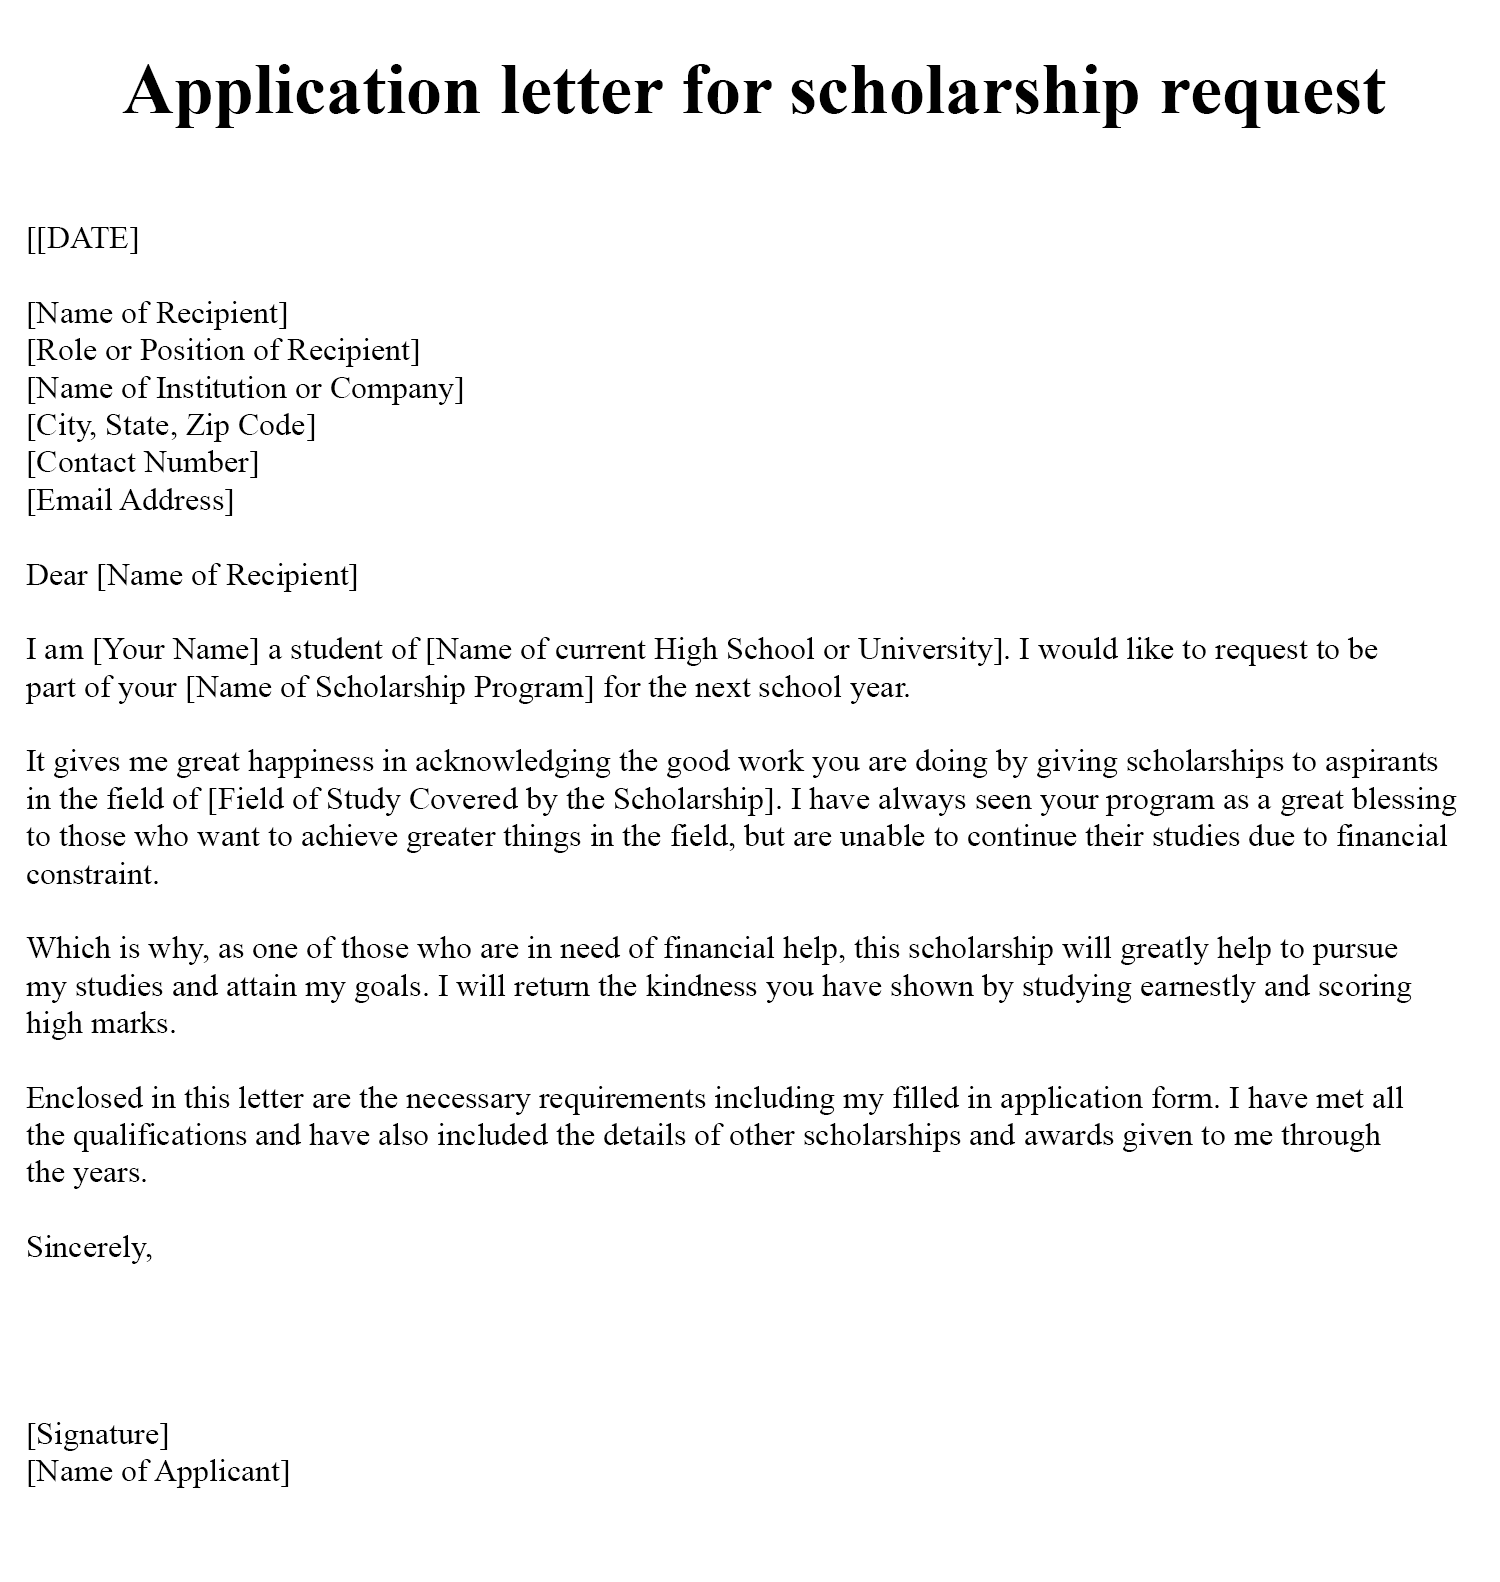 Application-letter-for-scholarship-request